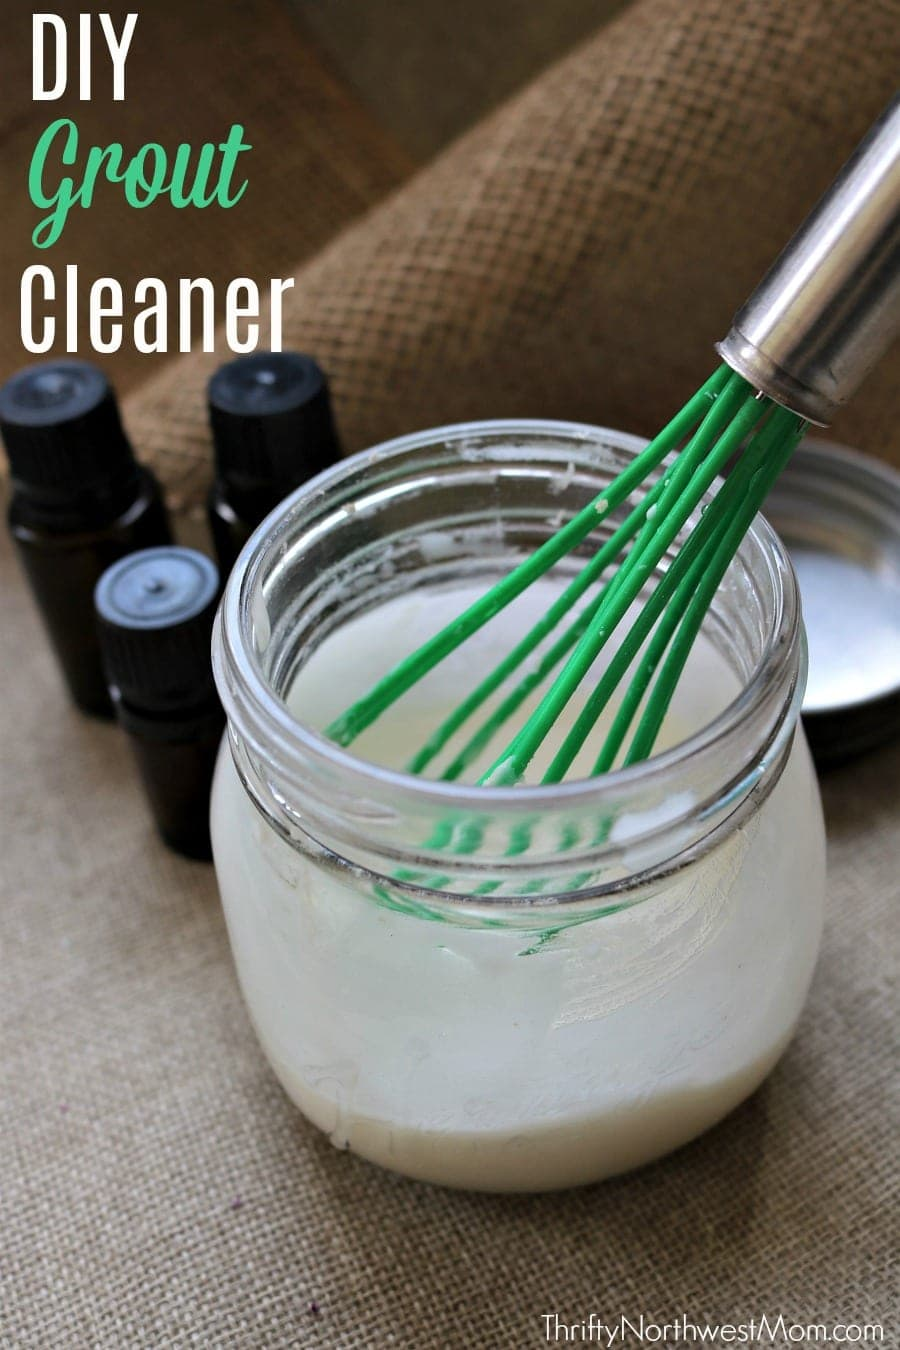 Try this DIY Homemade Grout Cleaner for a frugal, natural option for cleaning your bathroom tiles